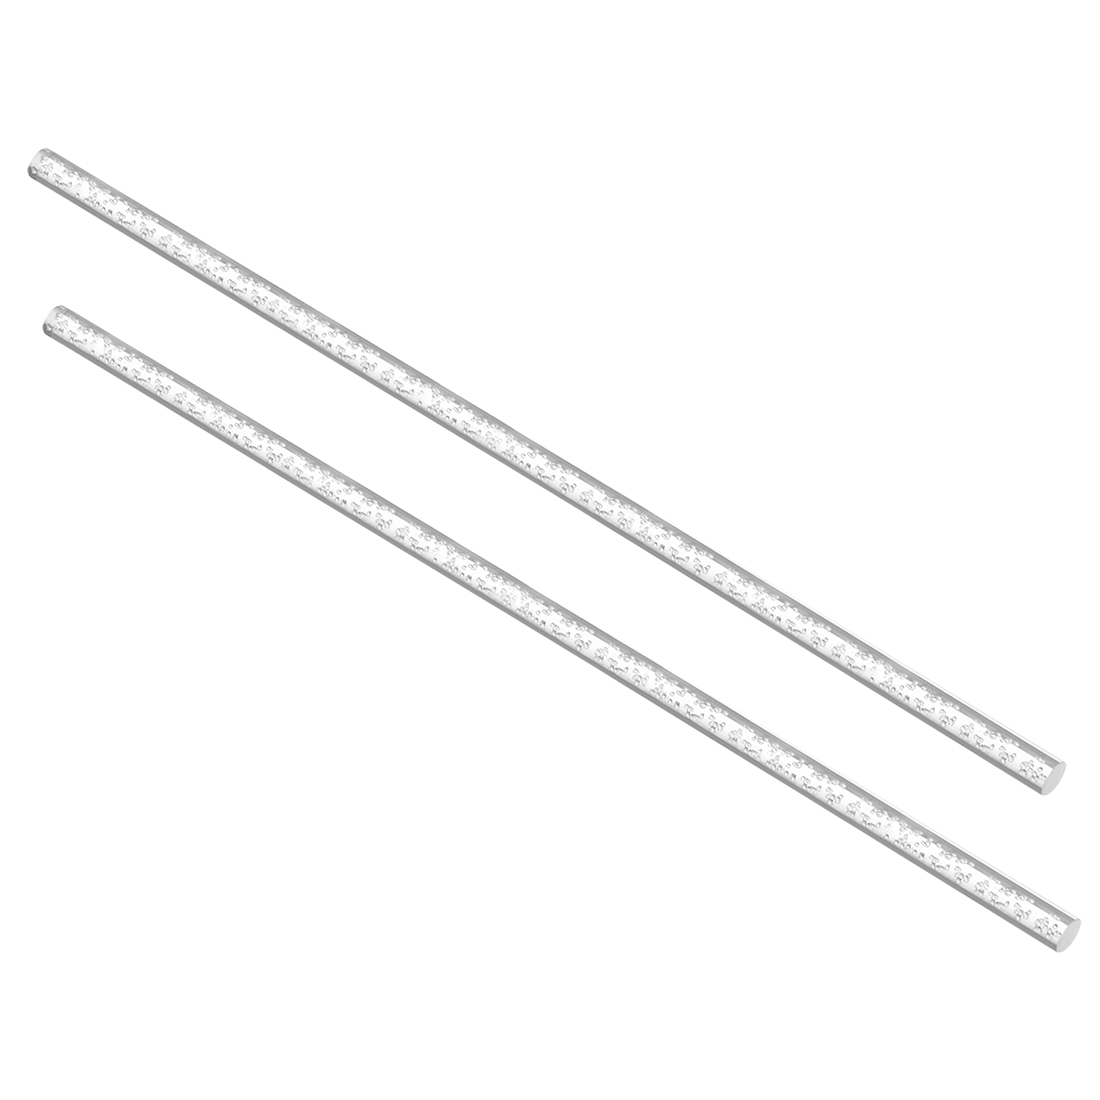 6mm Dia 250mm Long Air Bubble Acrylic Rod PMMA Circular Bar Clear 2pcs